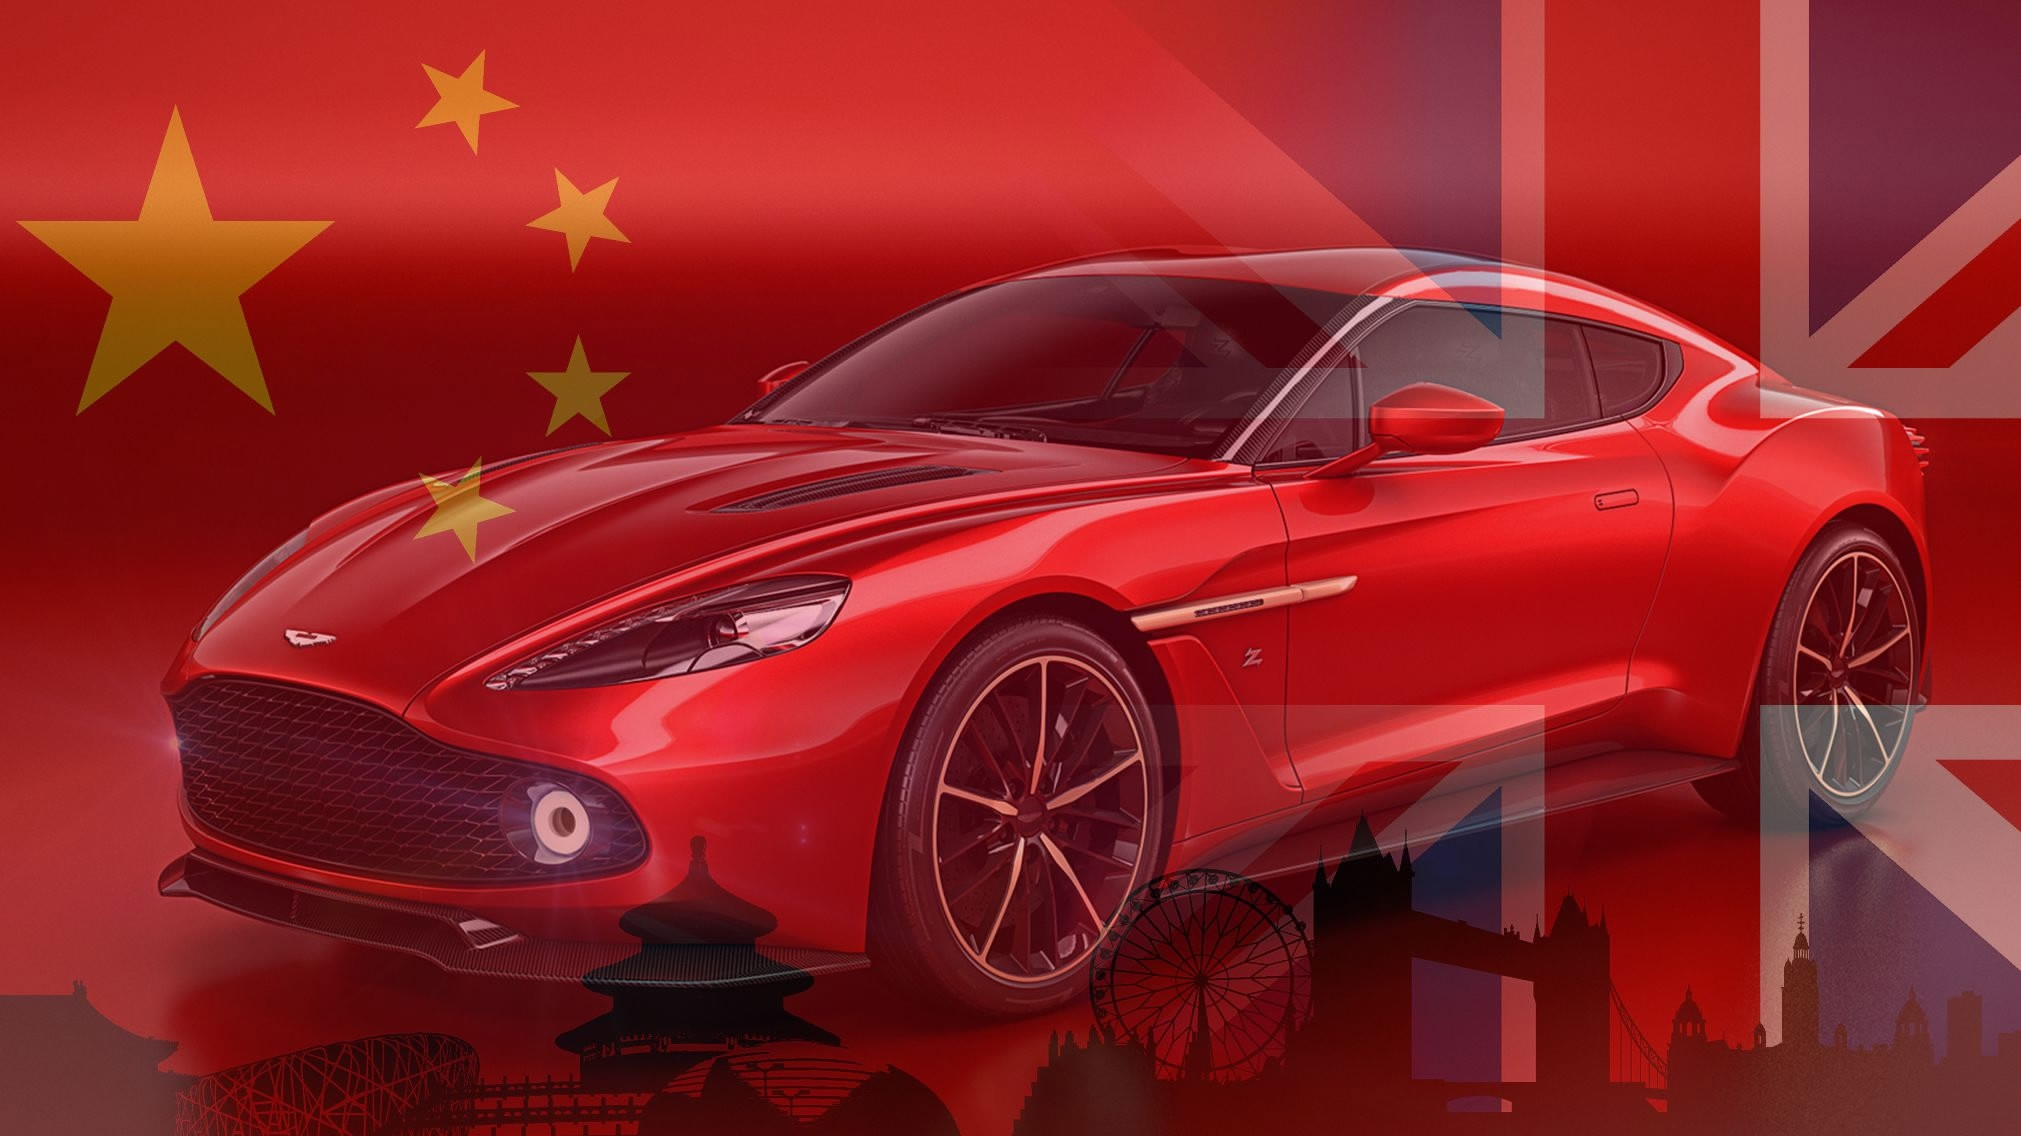 Vehicle Manufacturers In The Uk Uk Car Industry Giants Look To China On May S Visit Cgtn